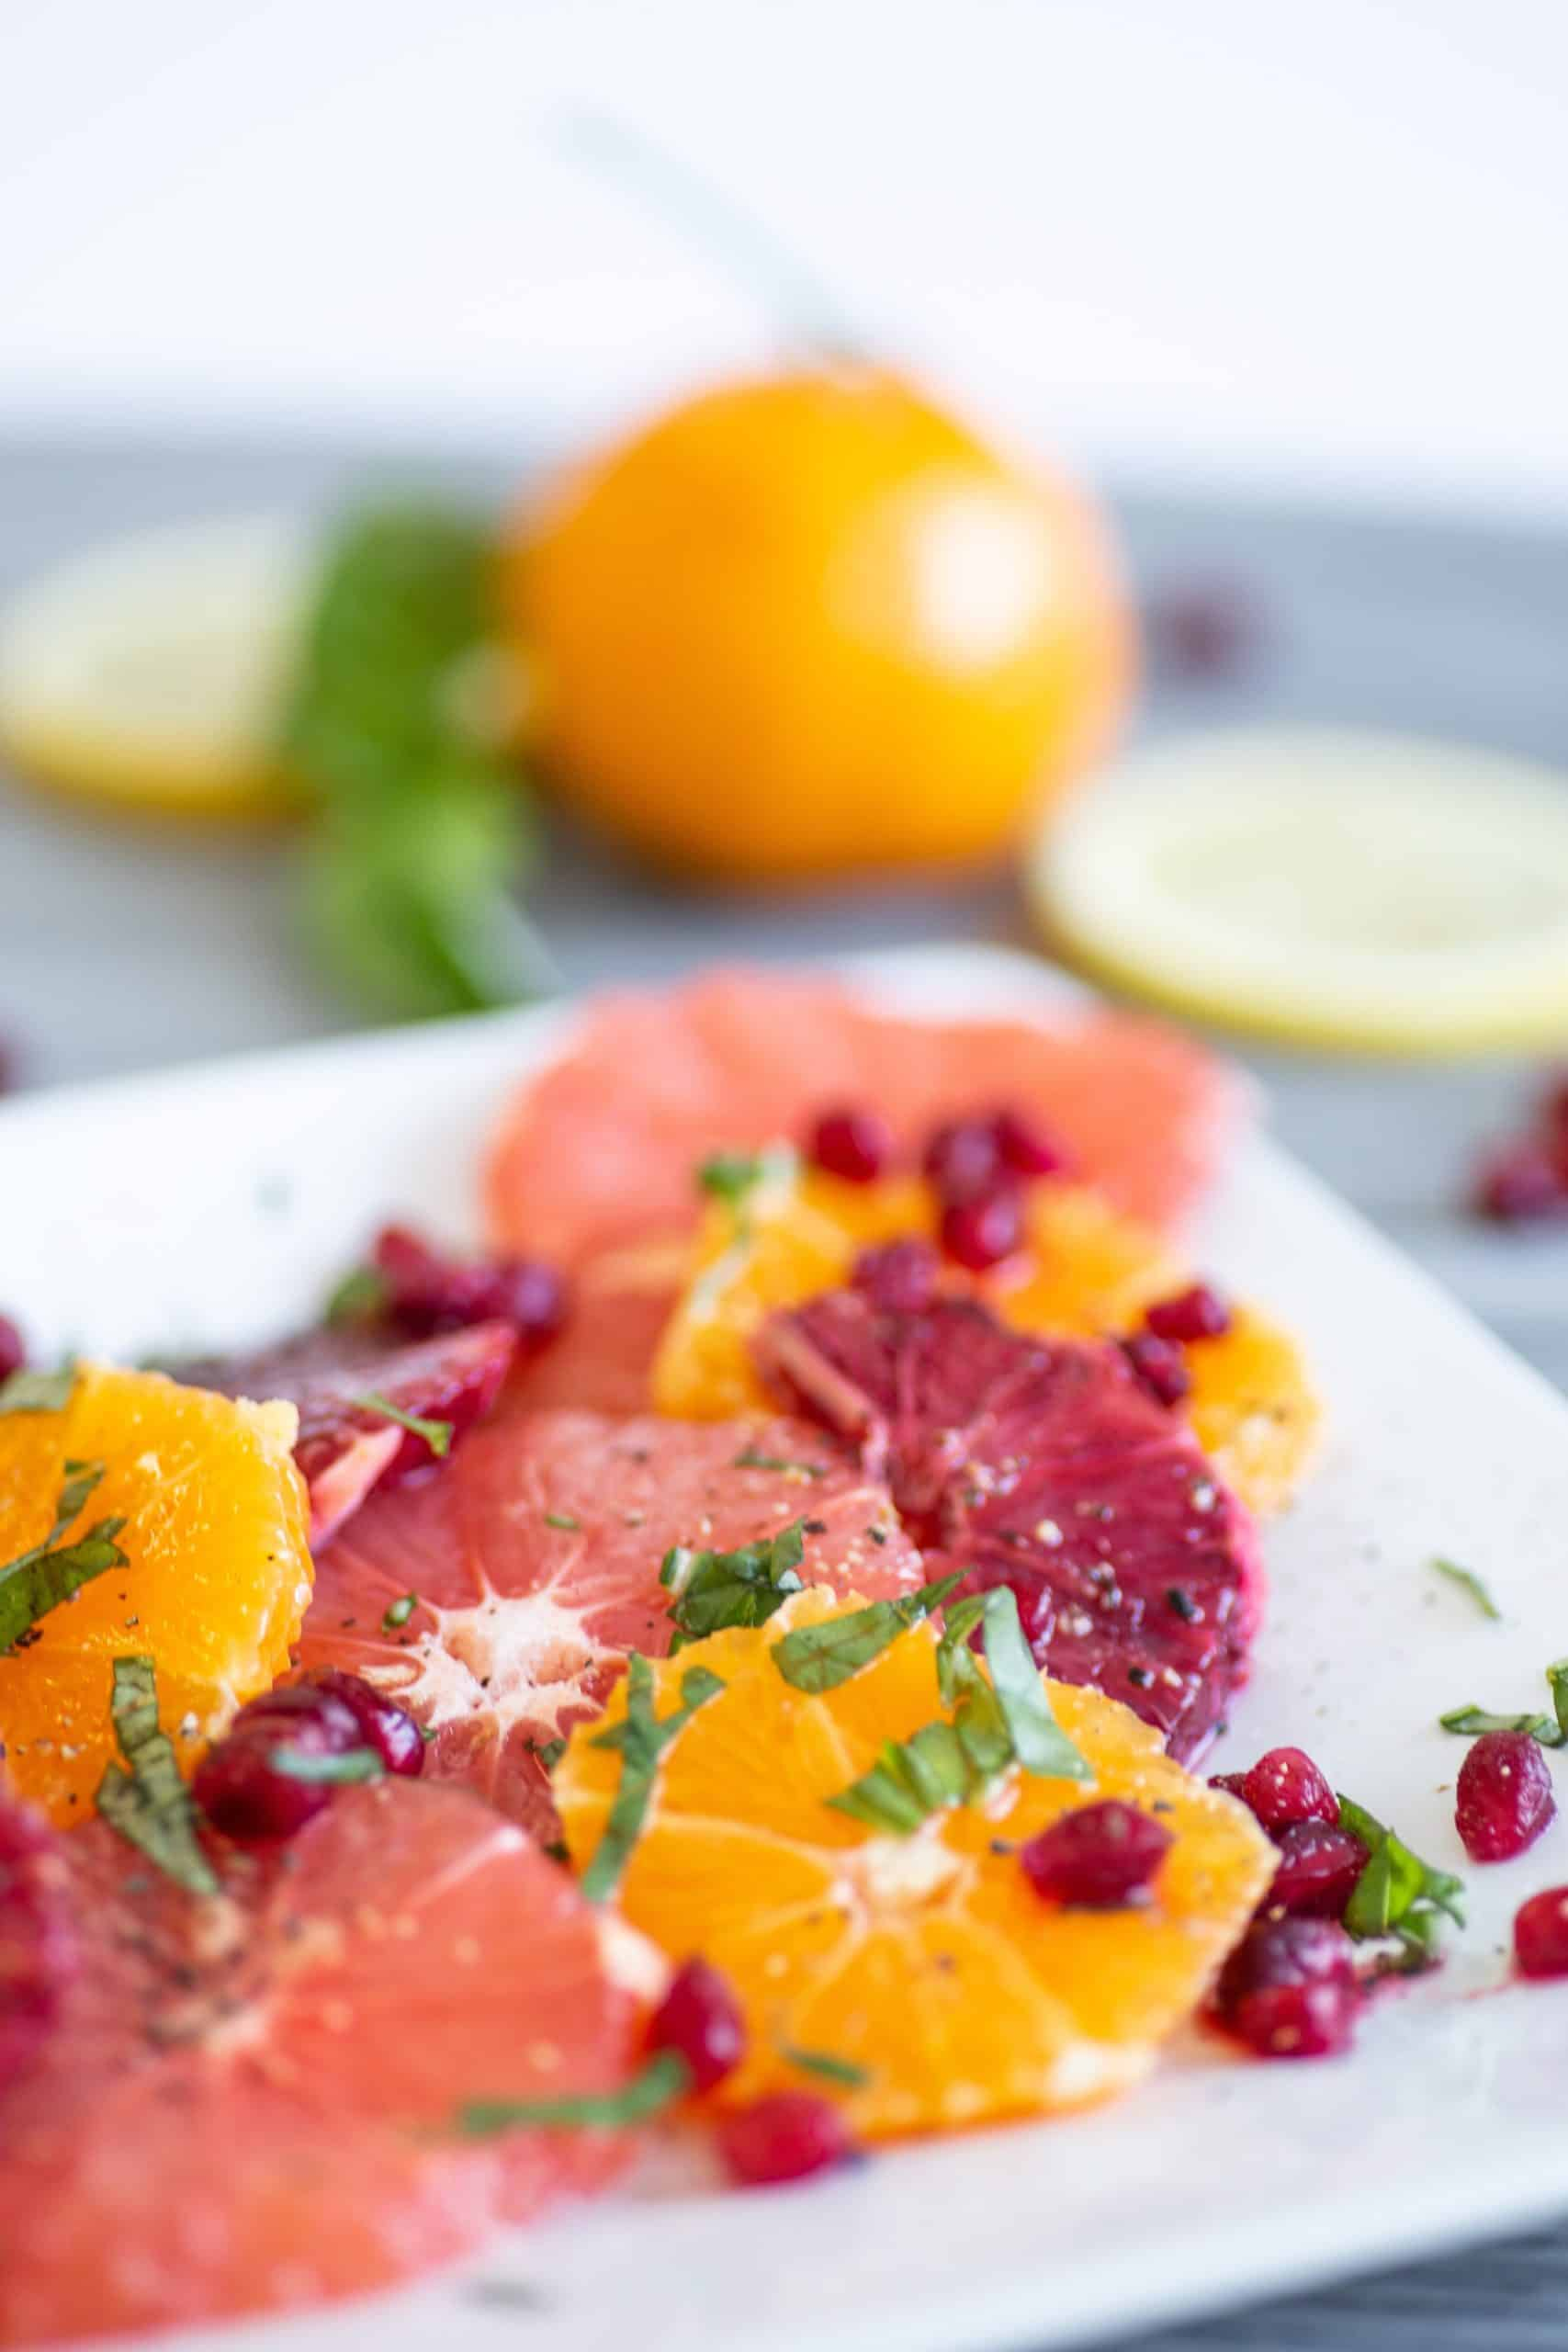 grapefruit salad on a white plate